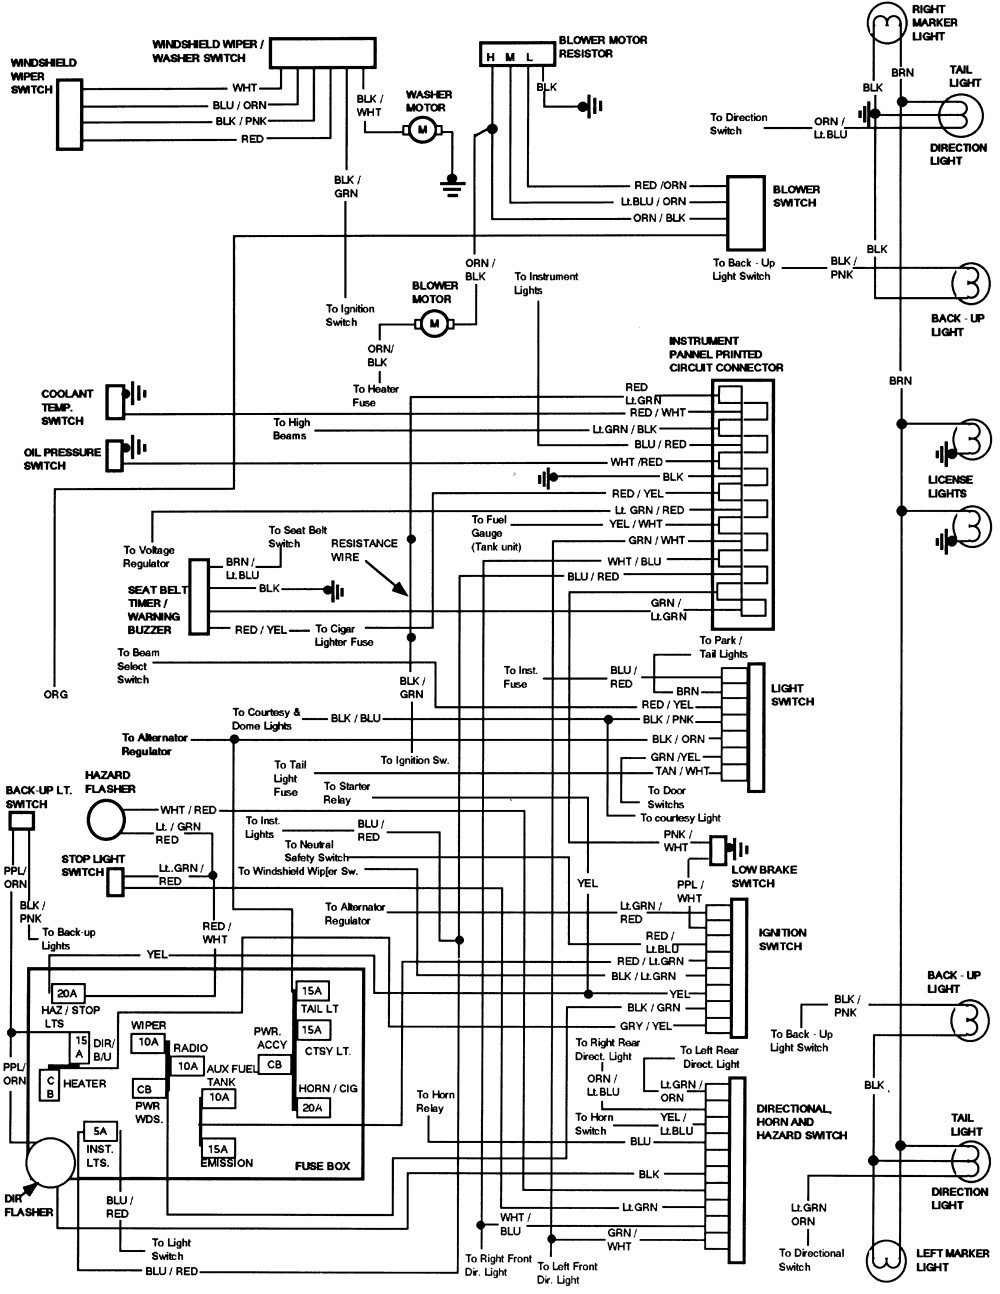 hight resolution of 1968 ford mustang steering column wiring diagram wiring diagram 79 mustang starter wiring diagram